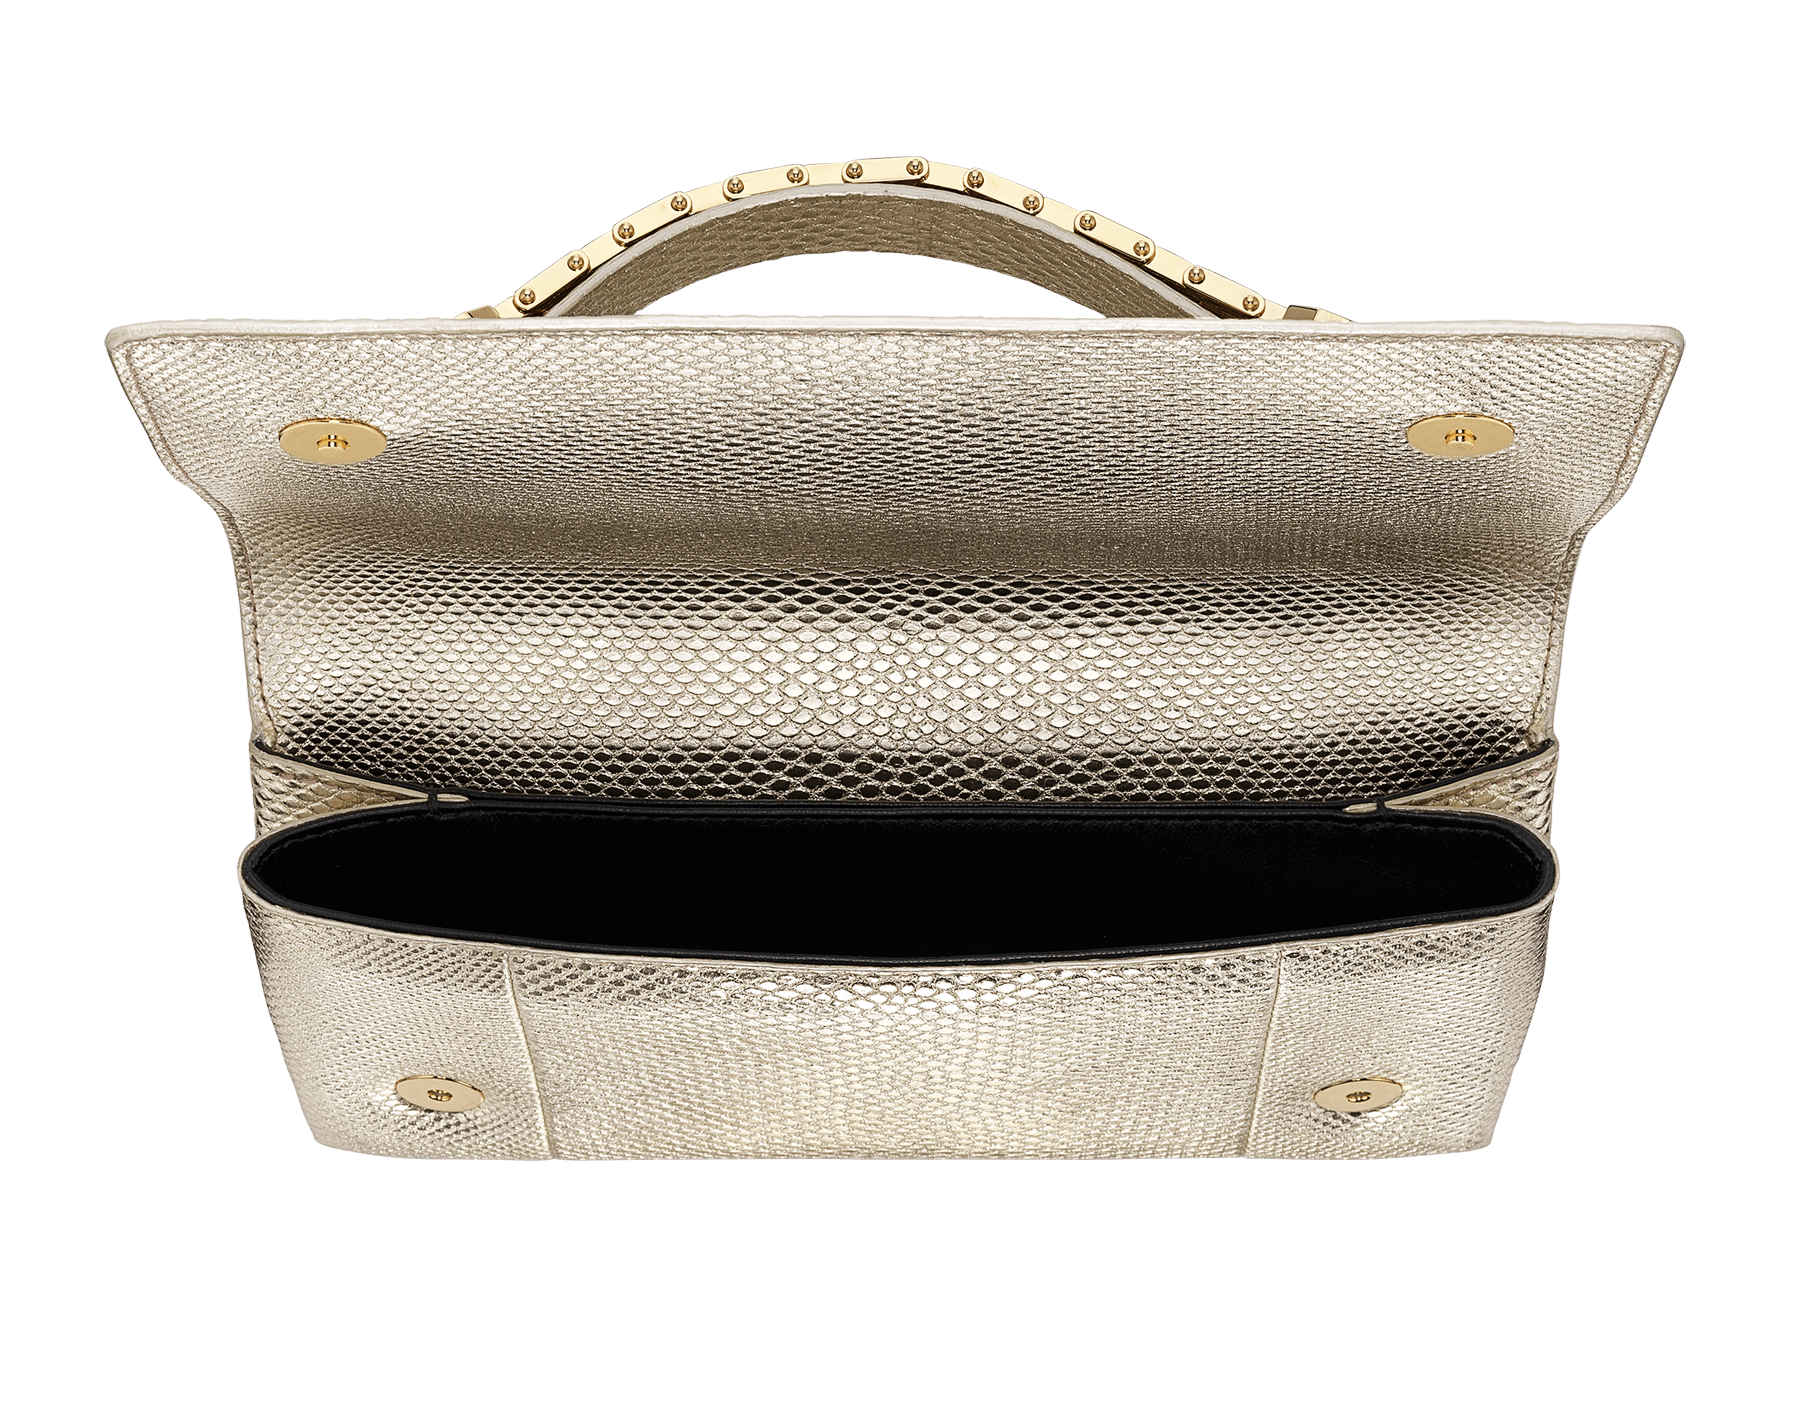 """Serpenti"" evening handle clutch bag in charcoal diamond metallic karung skin. Light gold Serpenti Seduttori handle. 526-HANDLECLUTCH image 4"